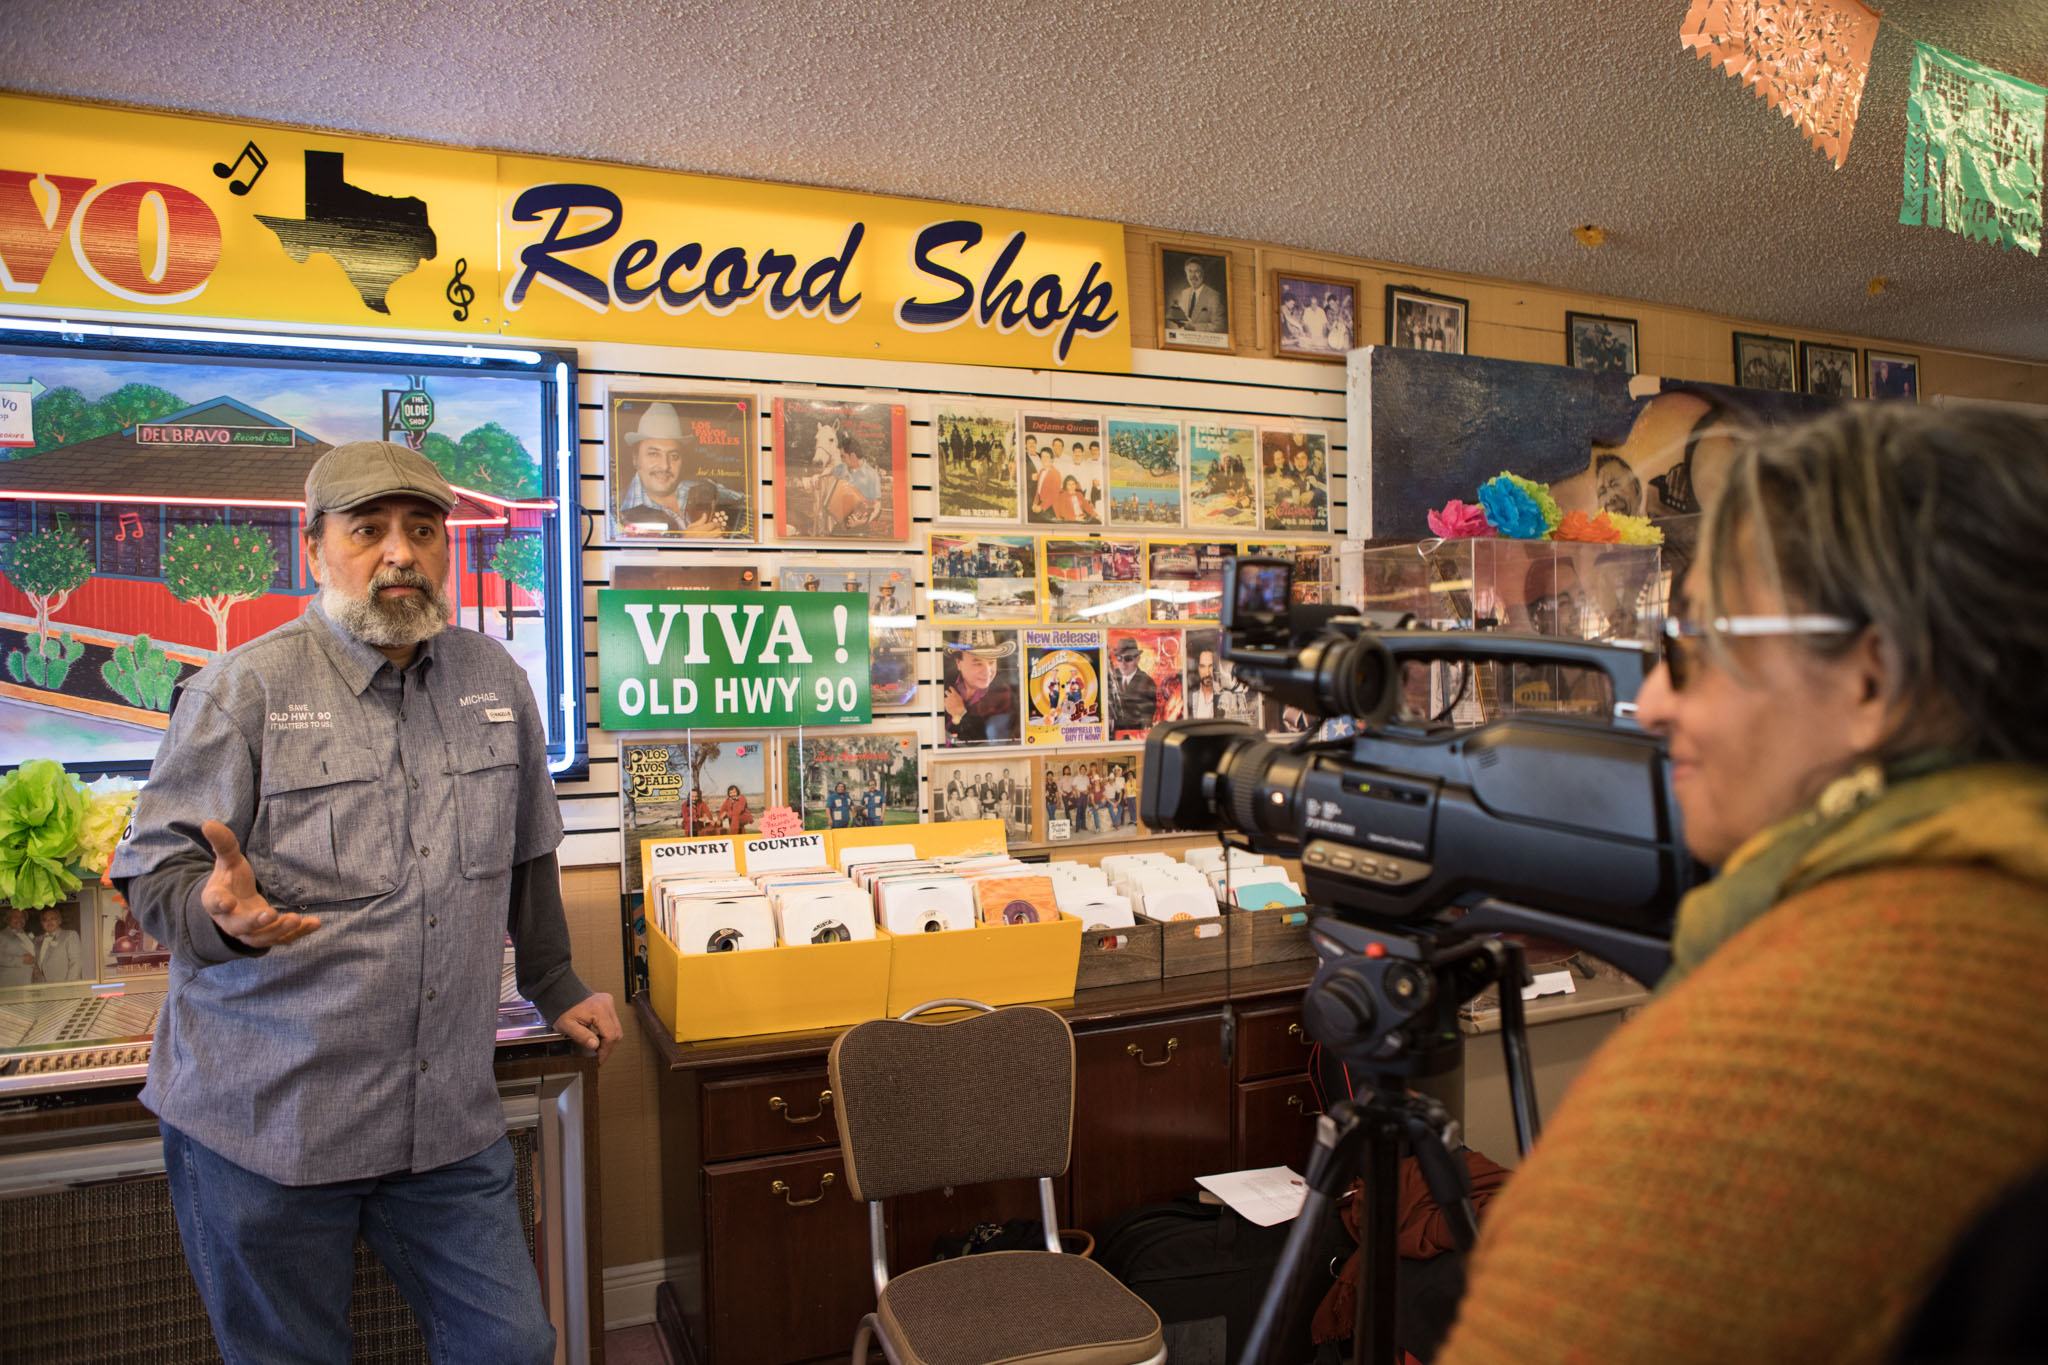 Michael Coormans (left), 4M Auto Supply owner, tells his experience owning a shop along Enrique M. Barrera Parkway, formerly known as Old Highway 90, to Claudia Guerra, Office of Historic Preservation Cultural Historian.